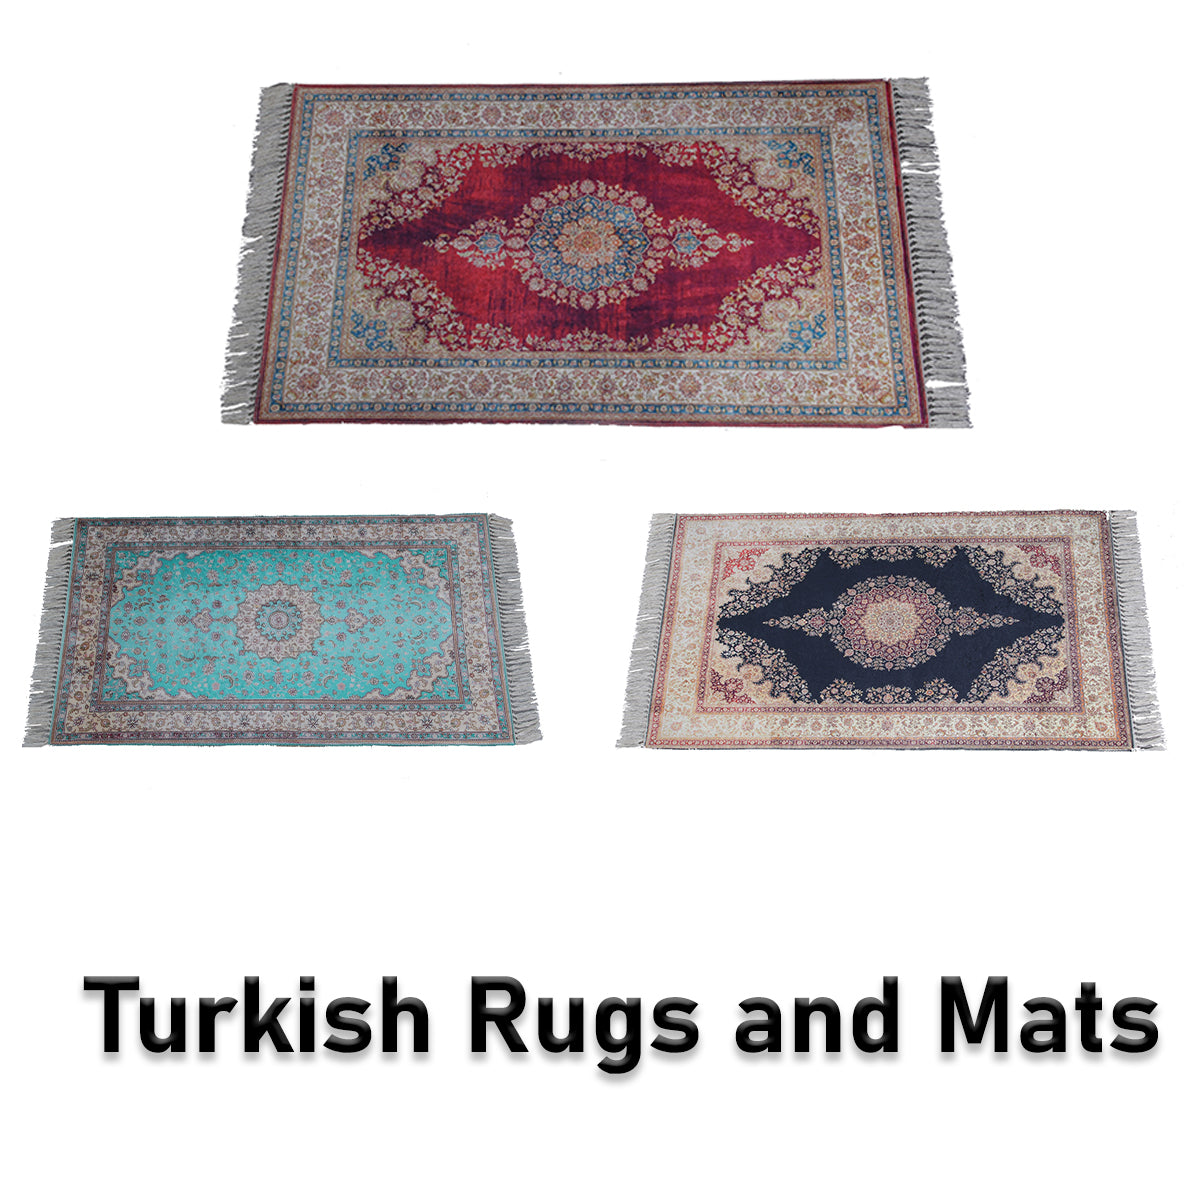 Turkish Rugs and Mats